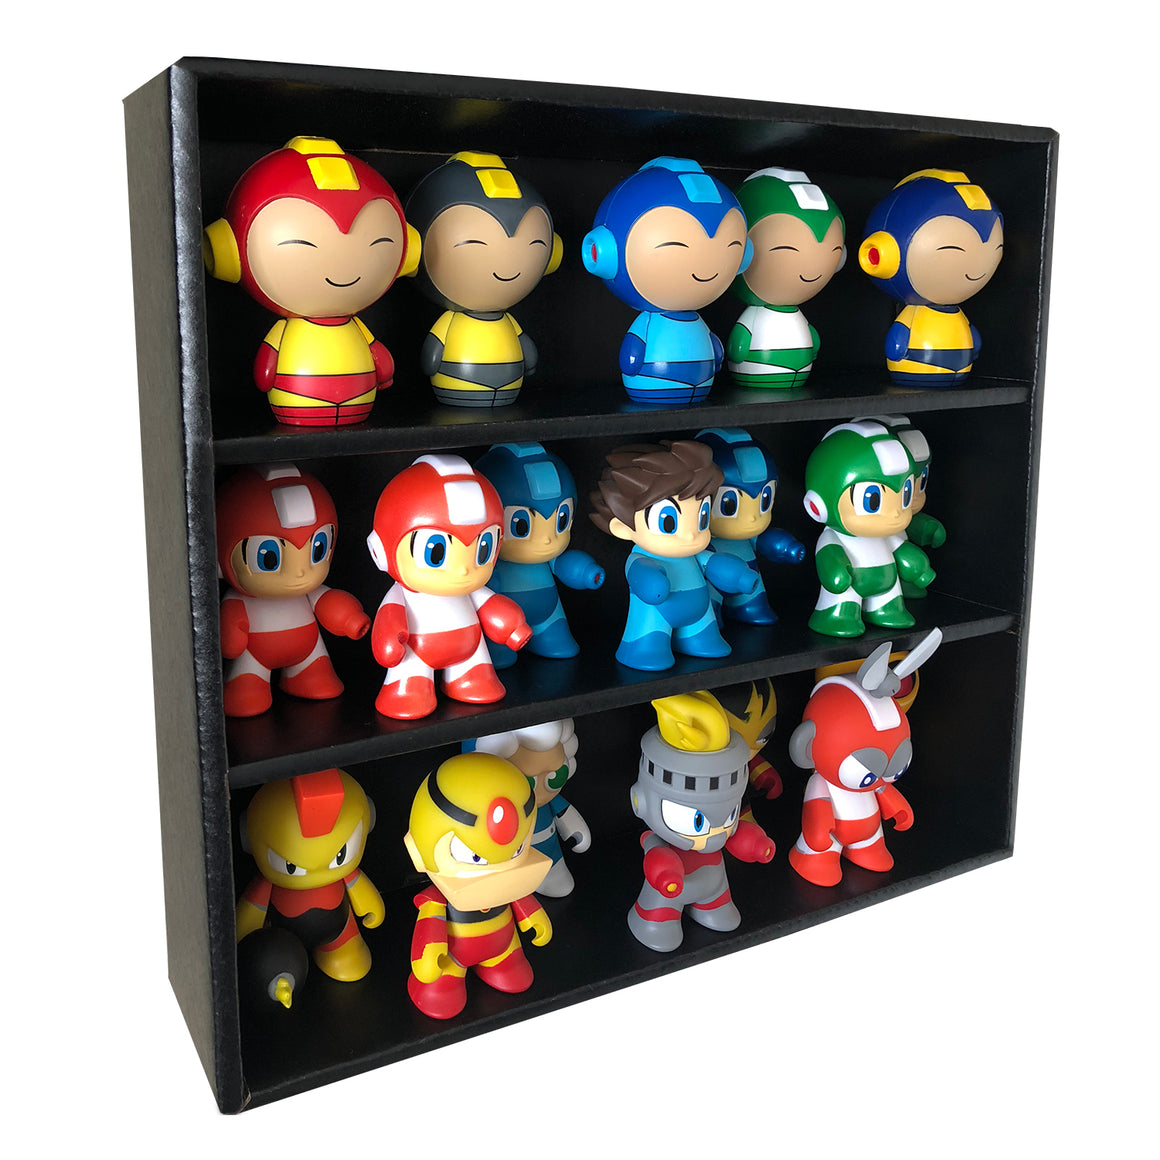 MINI - Black Stackable Funko Pop Display Toy Shelf for Vinyl Collectibles, Corrugated Cardboard